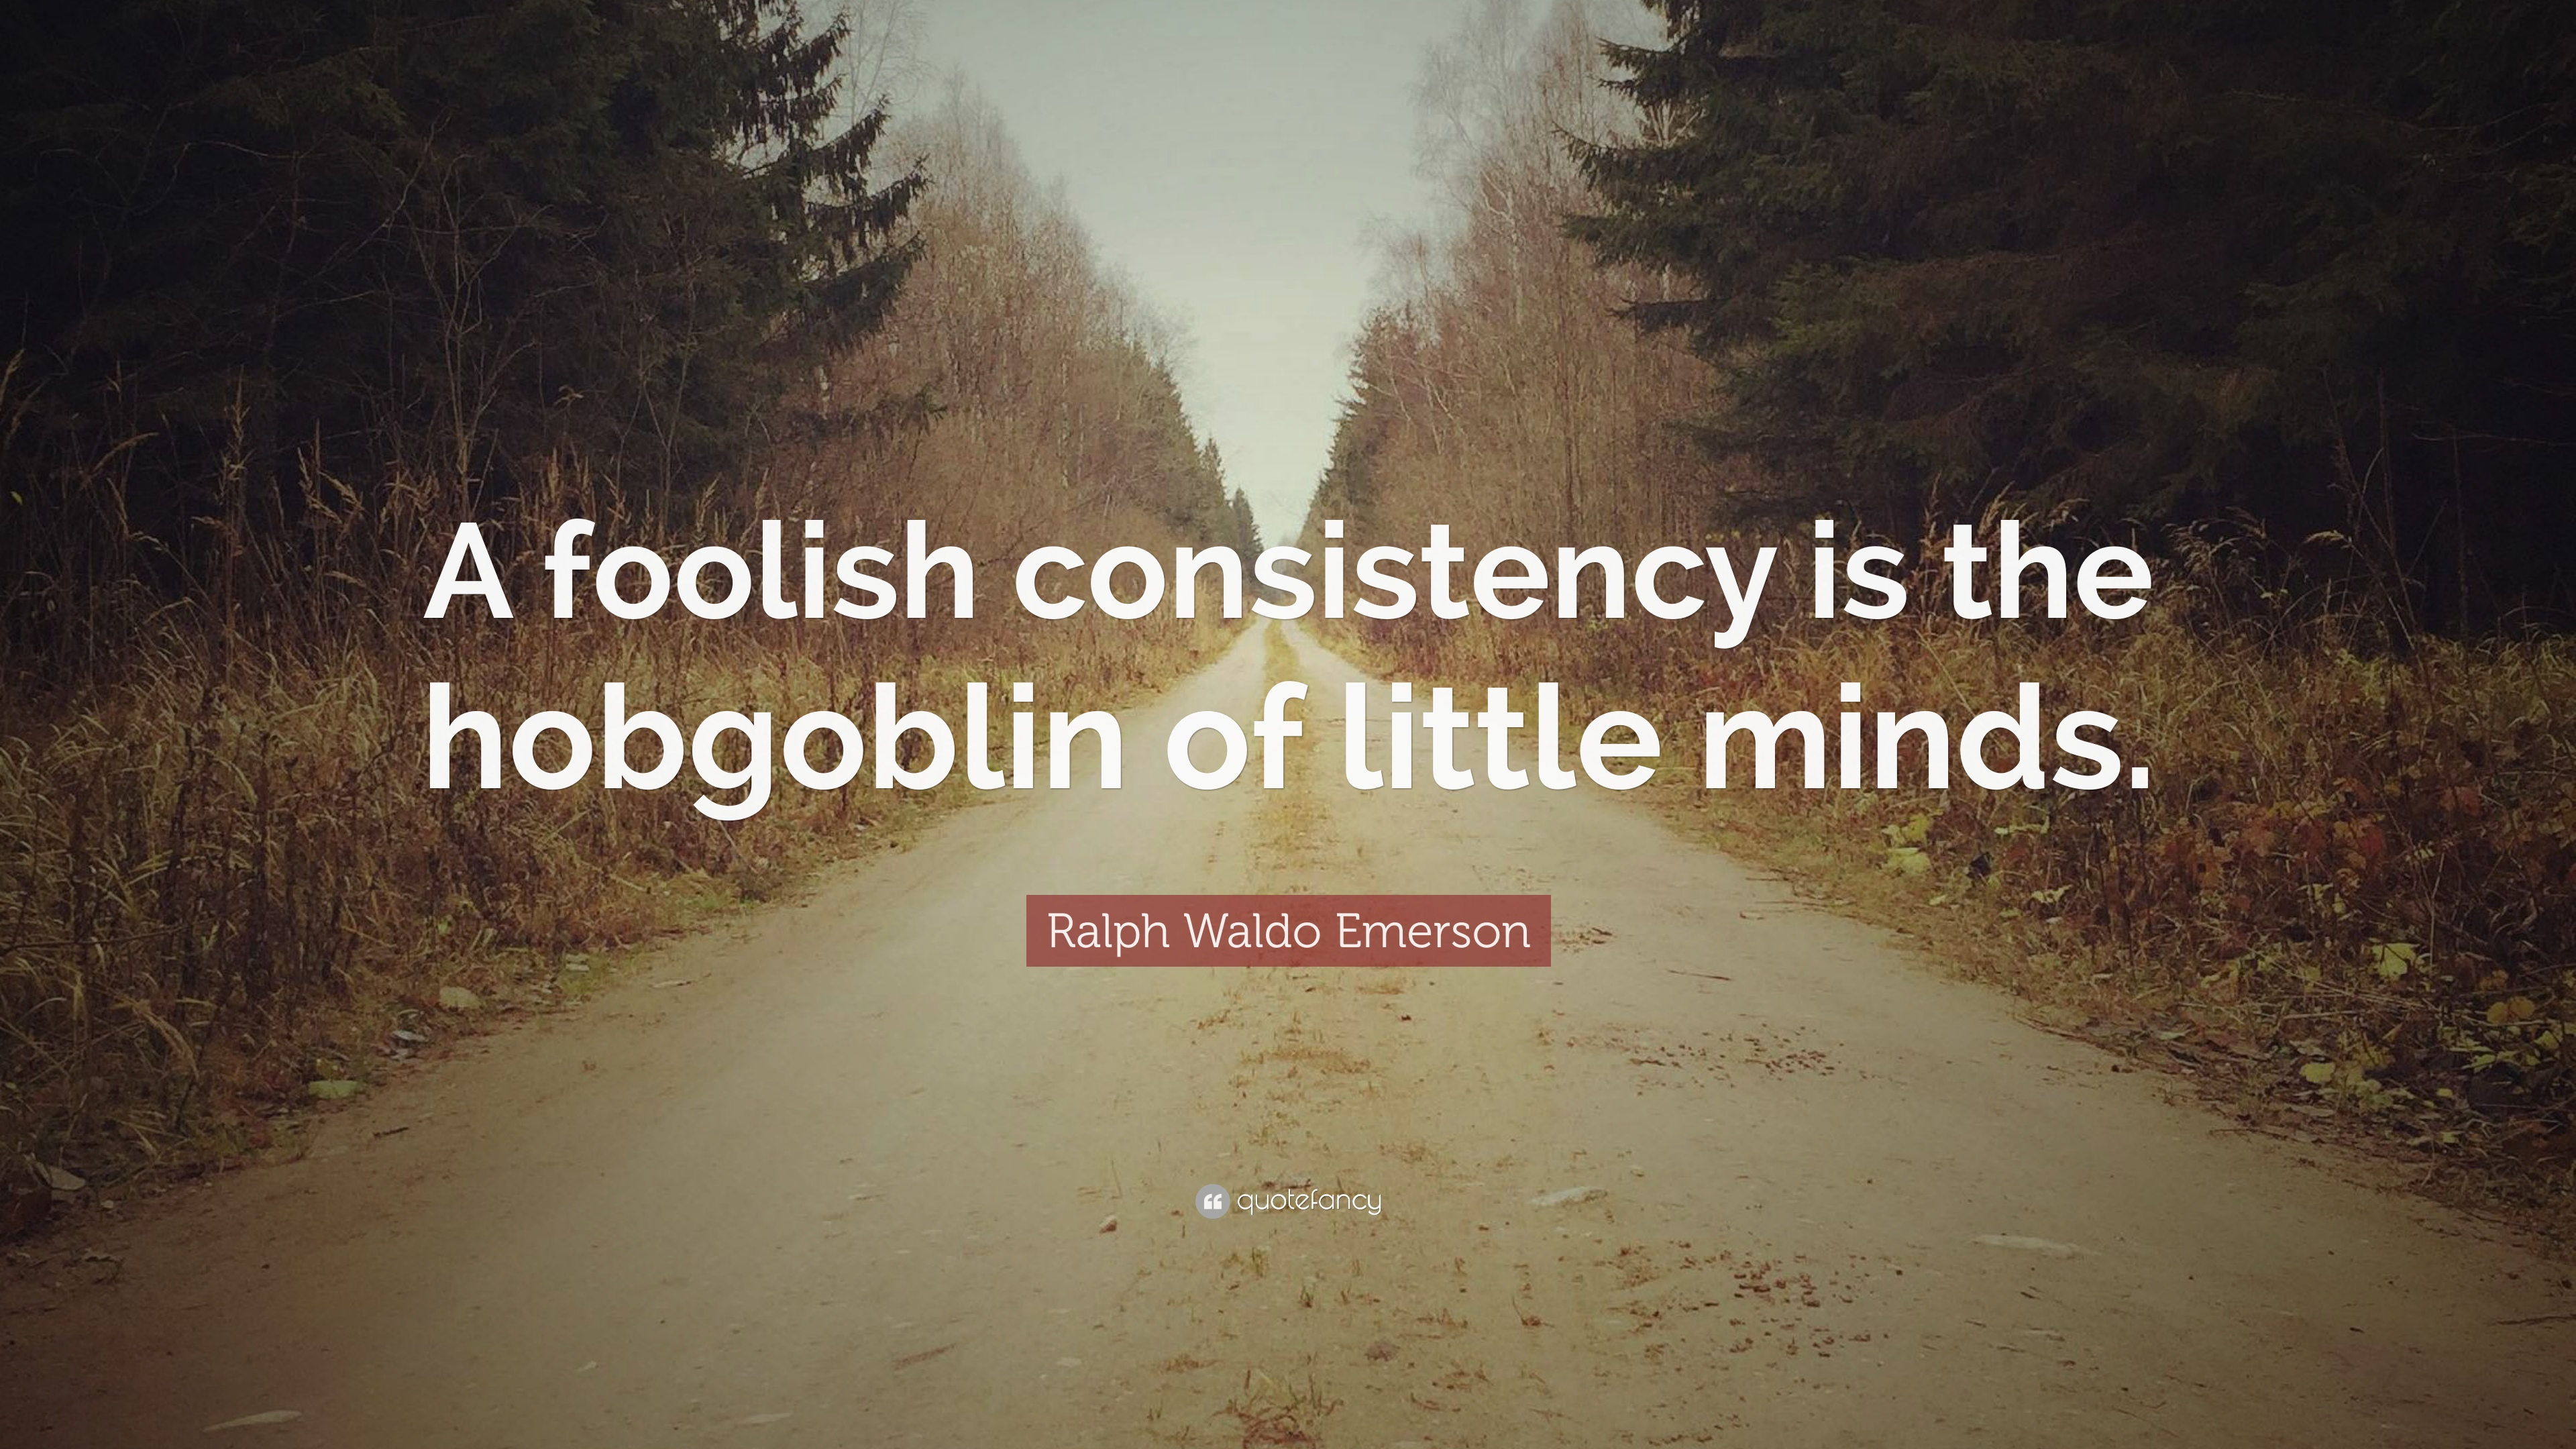 364750-Ralph-Waldo-Emerson-Quote-A-foolish-consistency-is-the-hobgoblin.jpg